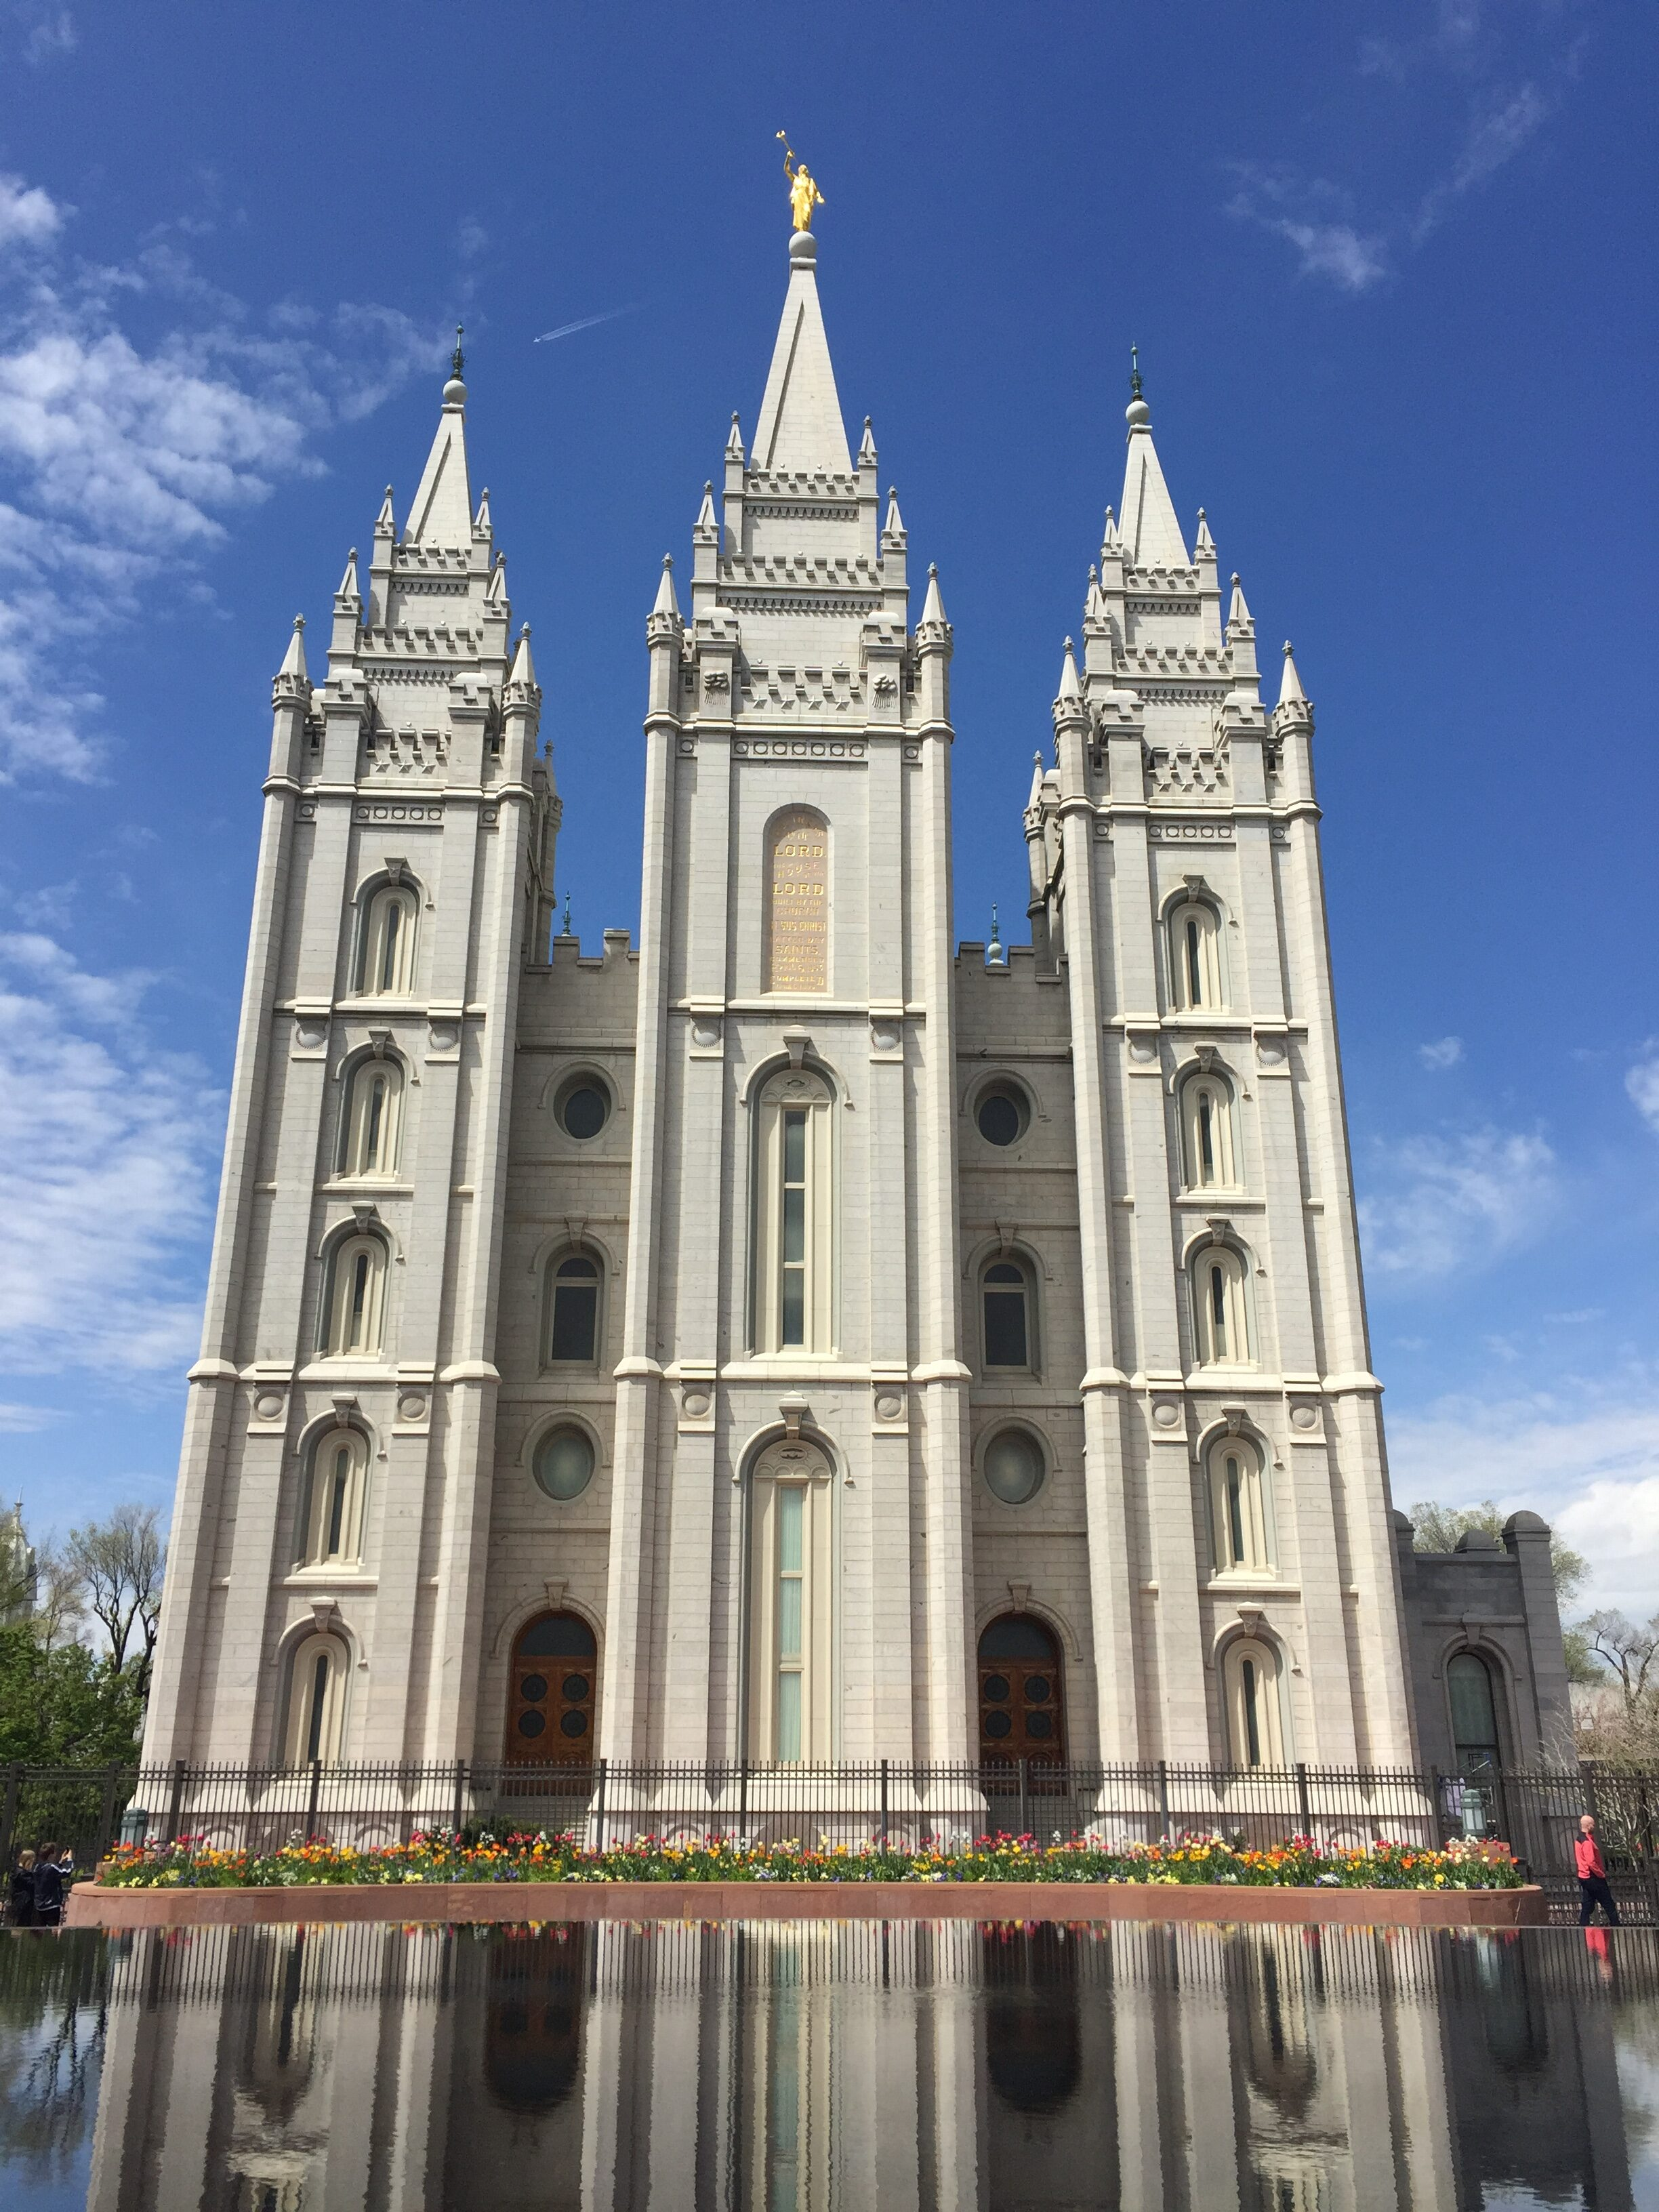 EEF7B629 E50A 48B0 B0BB 9B5DAD9C8952 A review of the 2019 BYU Women's Conference